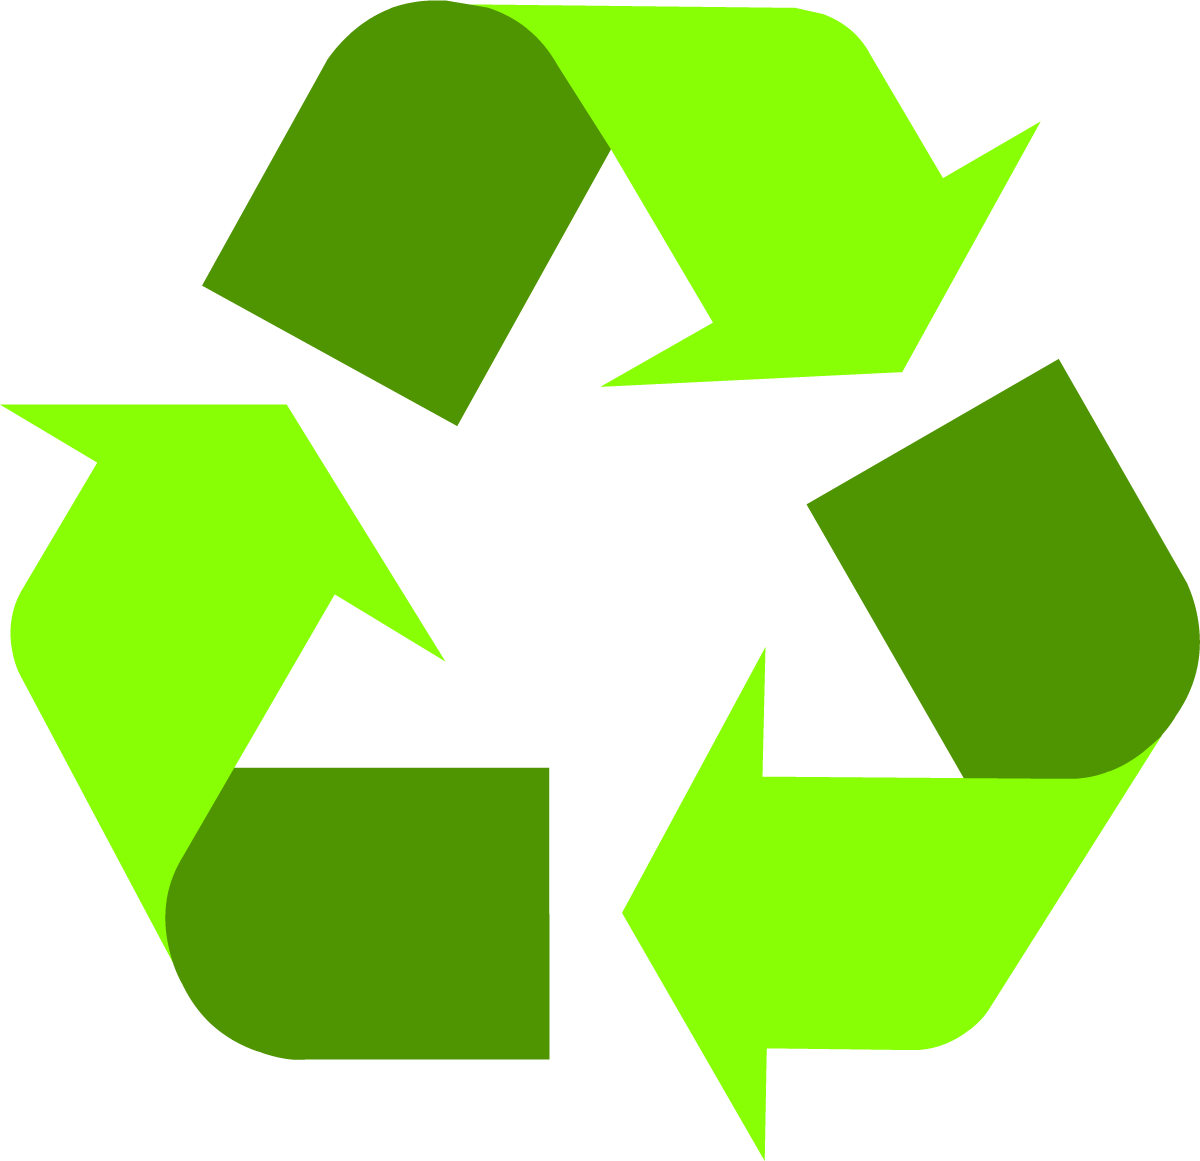 Crafts clipart sign. Light green universal recycling